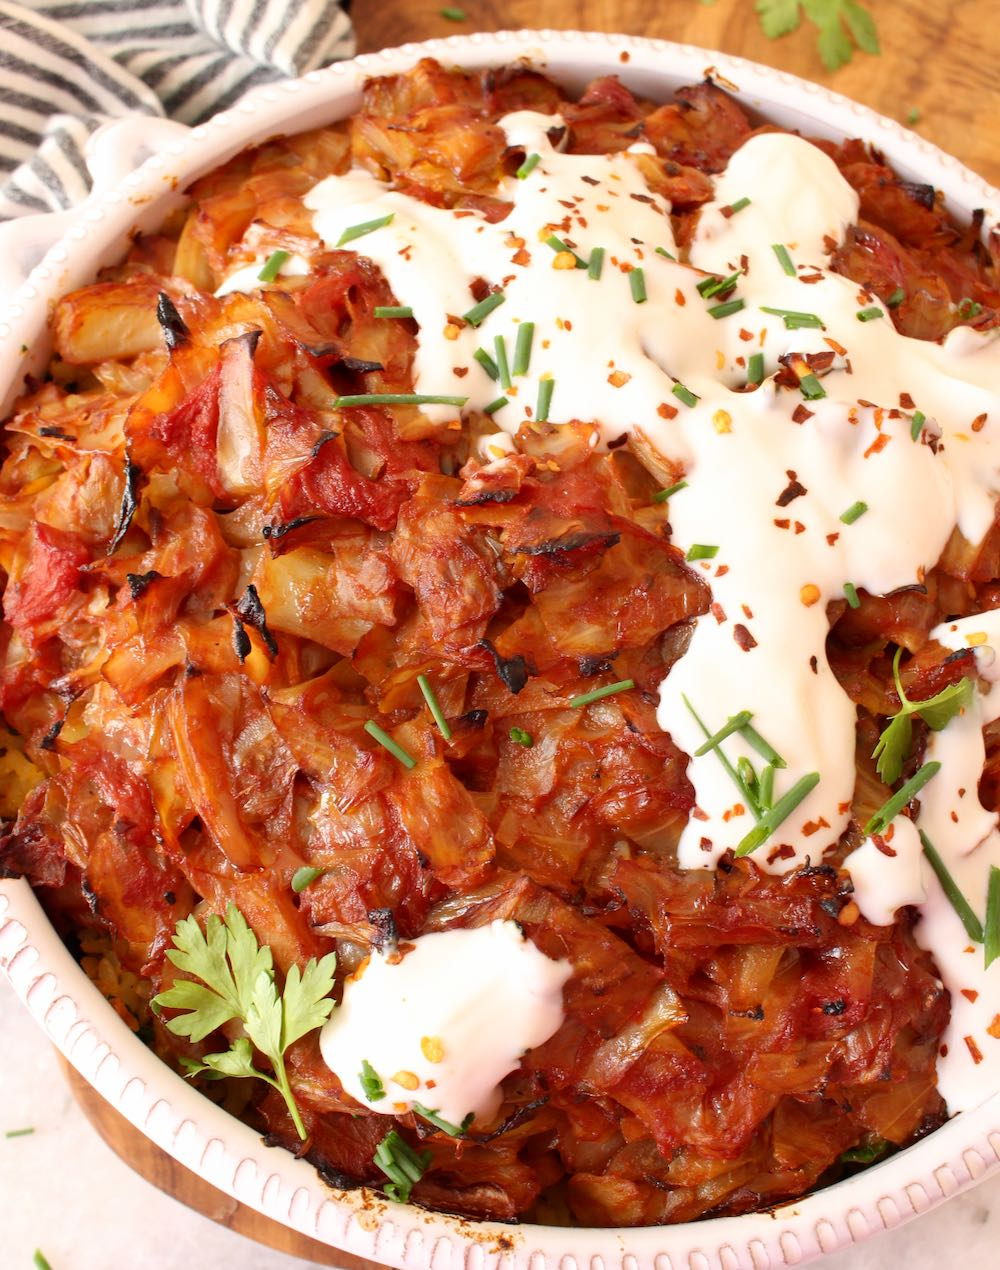 Cabbage Roll Casserole with Brown rice and Vegan Sour Cream